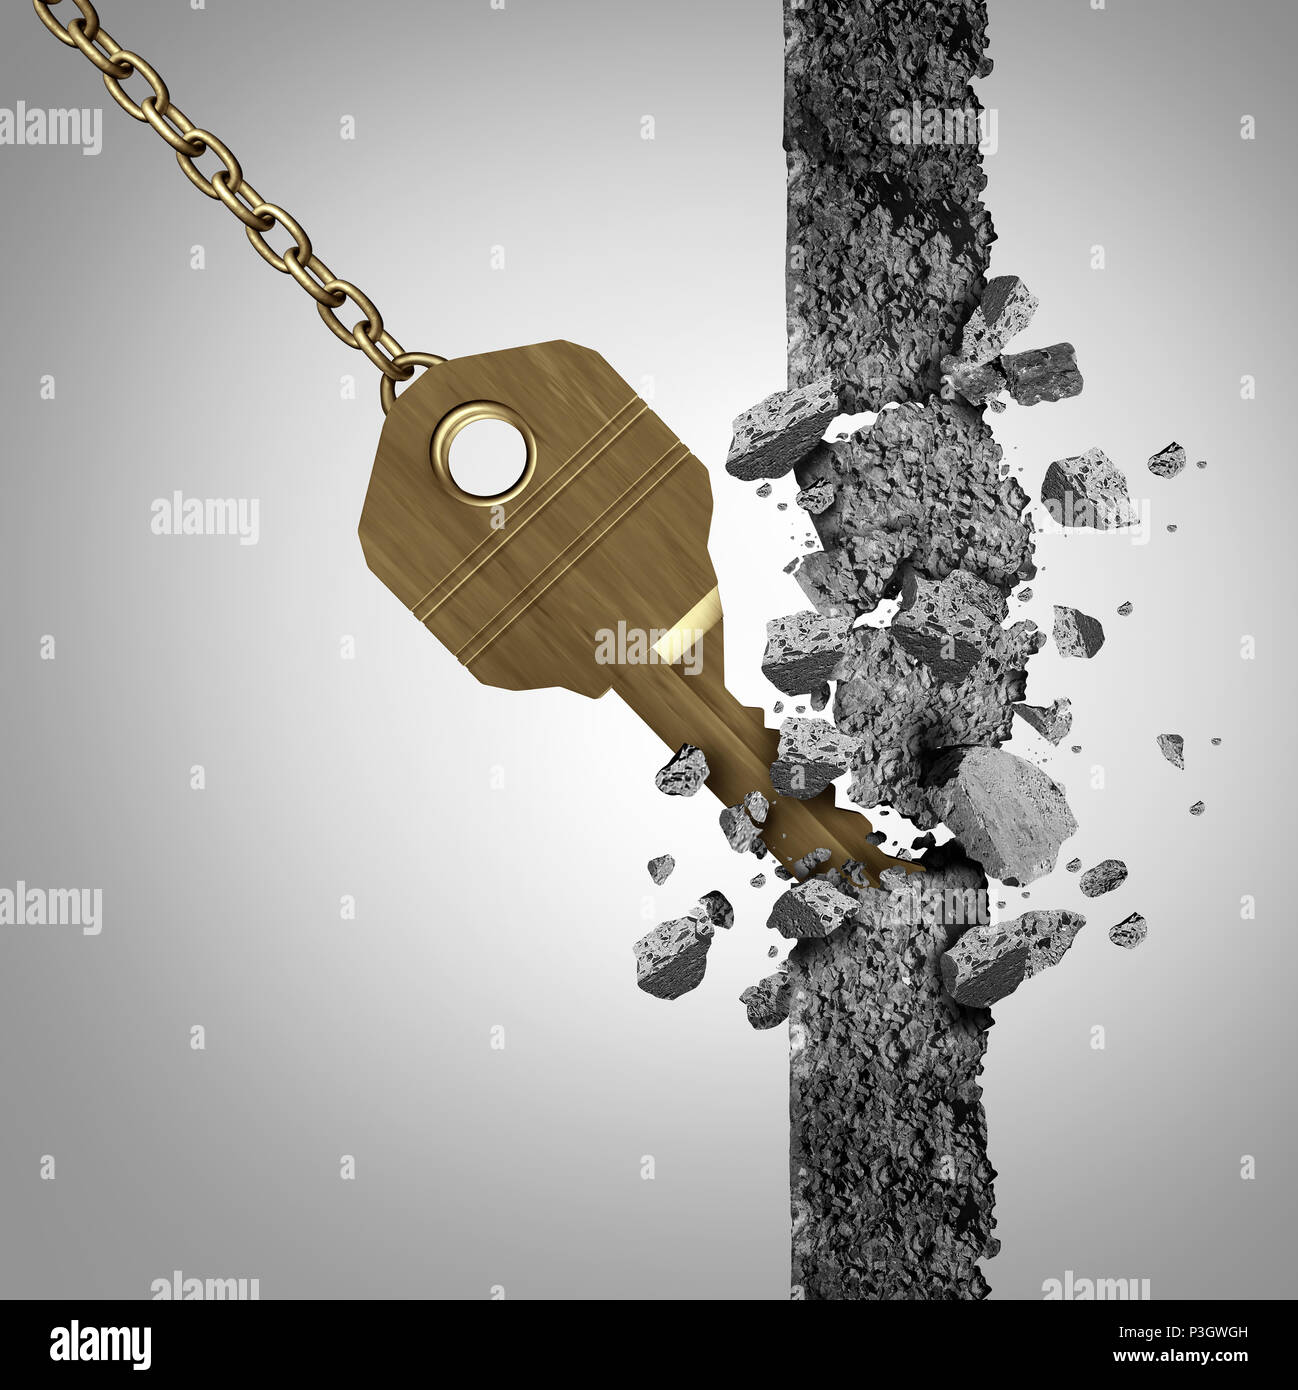 Key discovery business breakthrough success concept as an opening tool breaking an obstacle with 3D illustration elements. - Stock Image